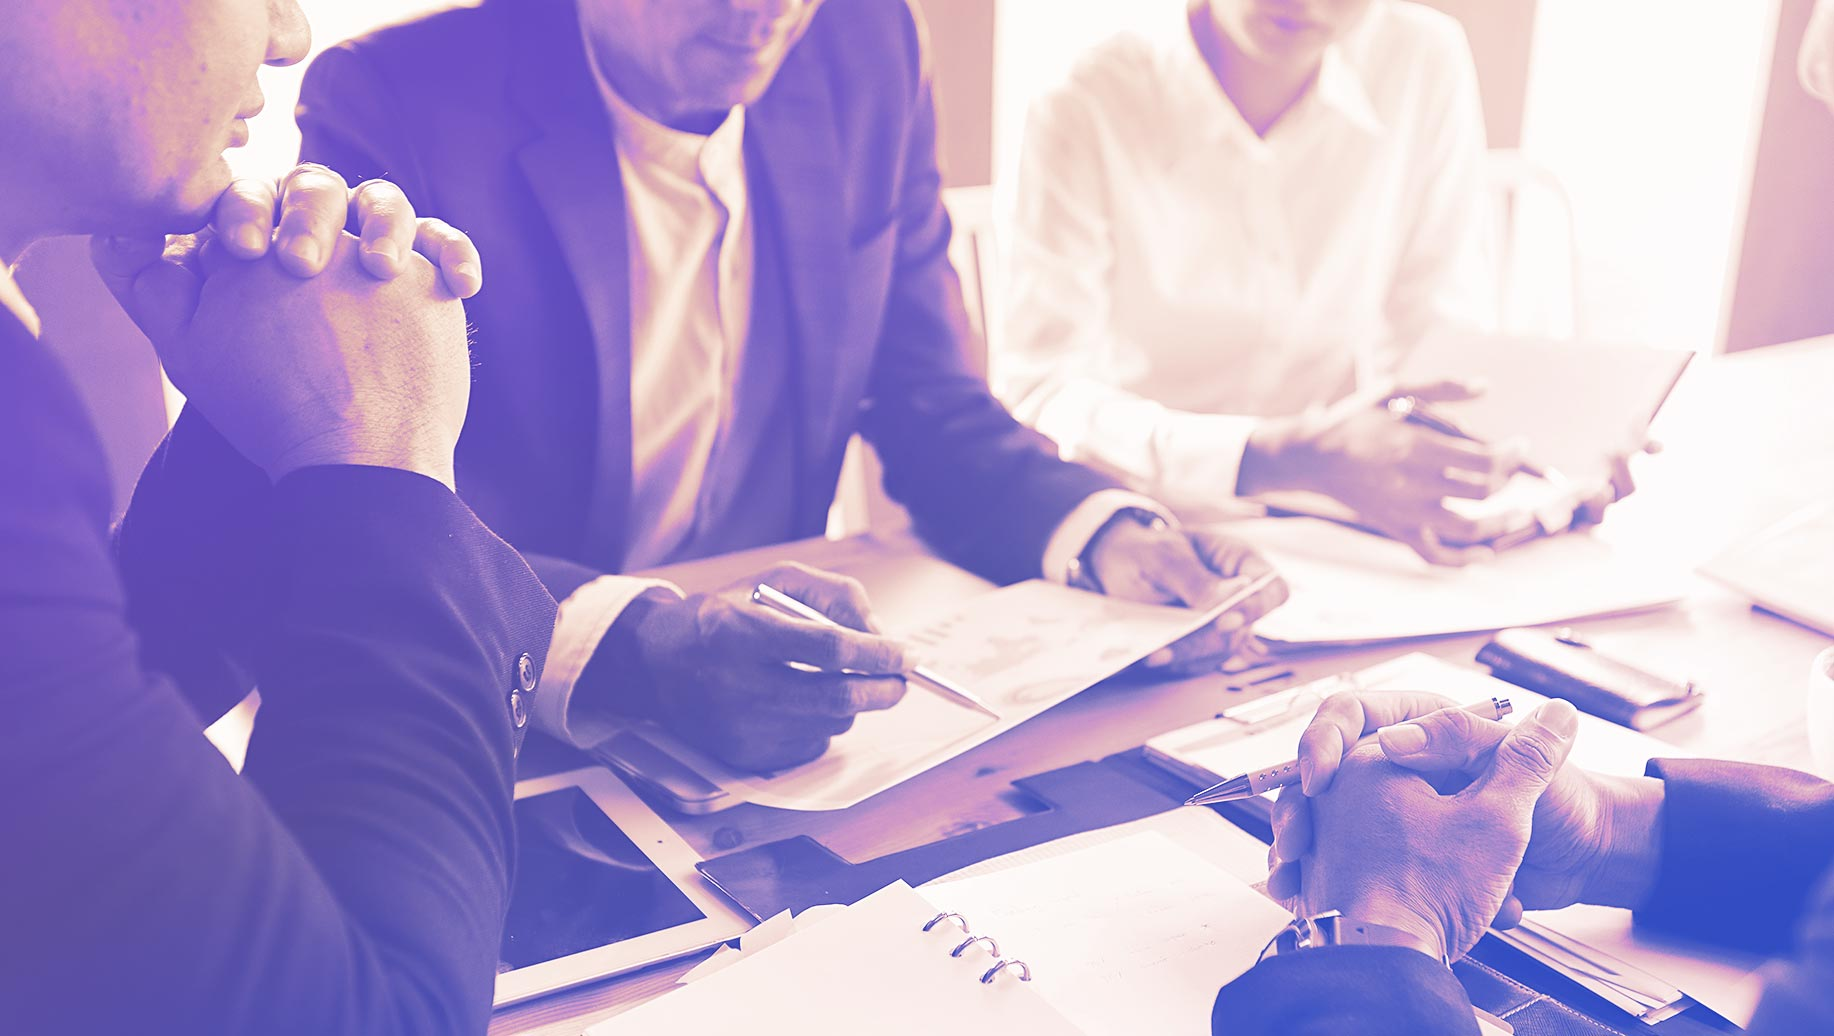 All Hands On Deck Joint Tax Planning Strategies For Corporations - CrowdReason